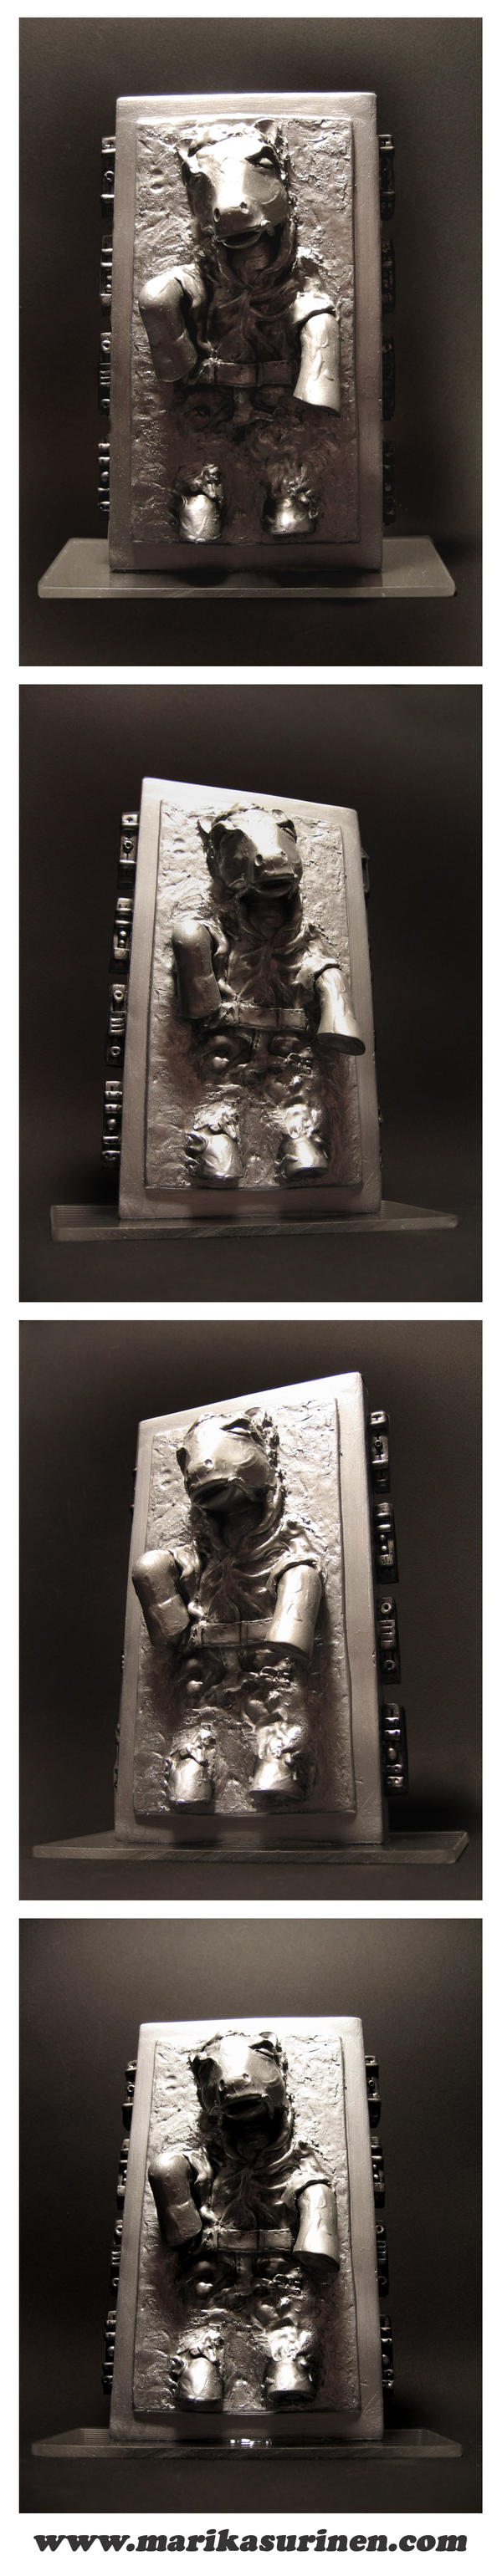 My Little Solo in Carbonite